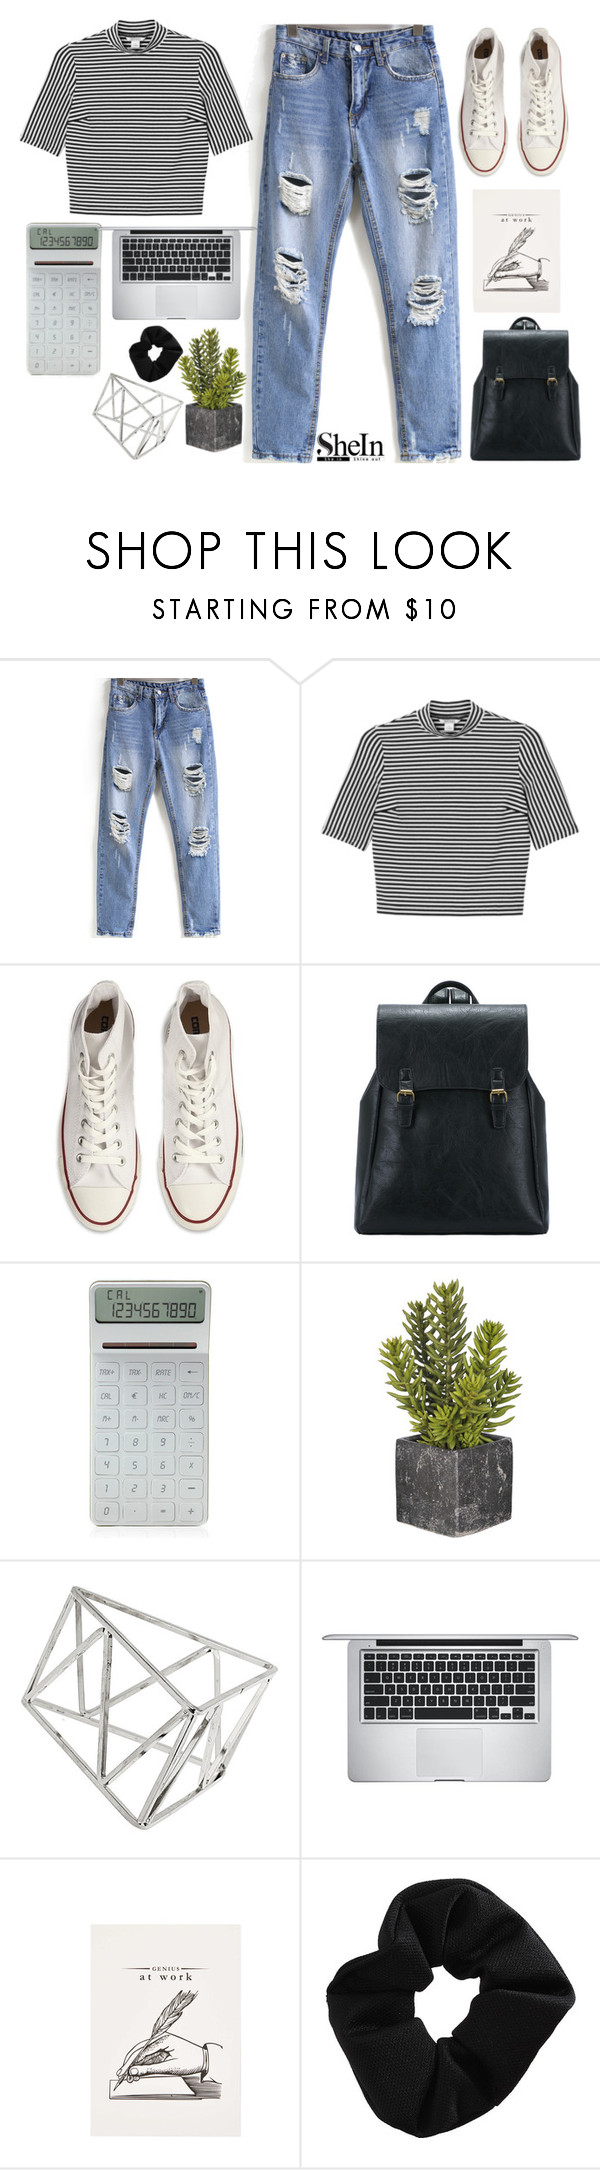 """""""#SheIn"""" by credentovideos ❤ liked on Polyvore featuring Monki, Converse, LEXON, Topshop and Apple"""